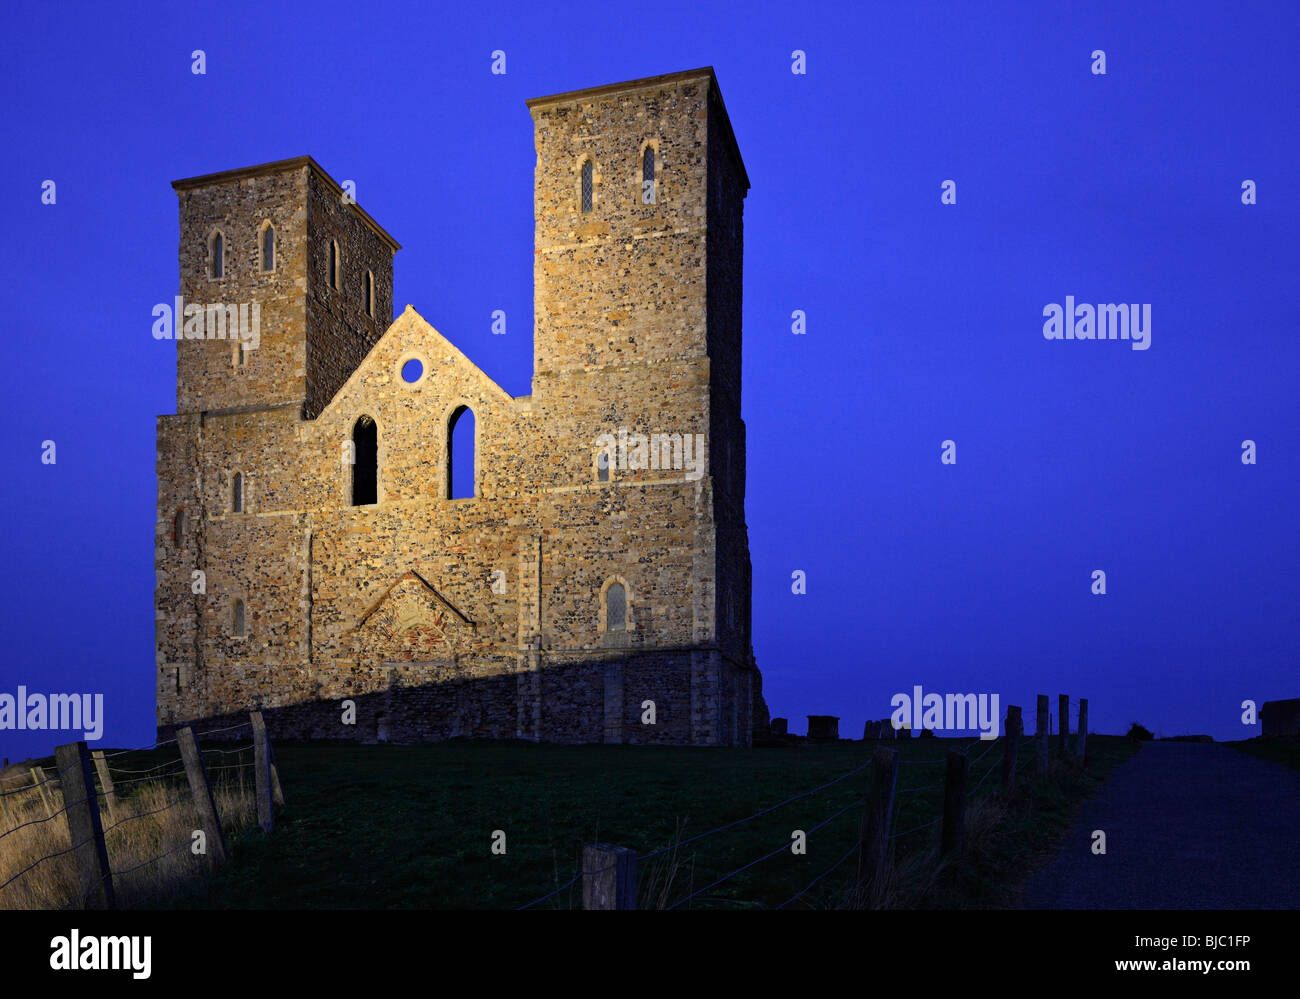 Reculver Towers floodlit at night. - Stock Image